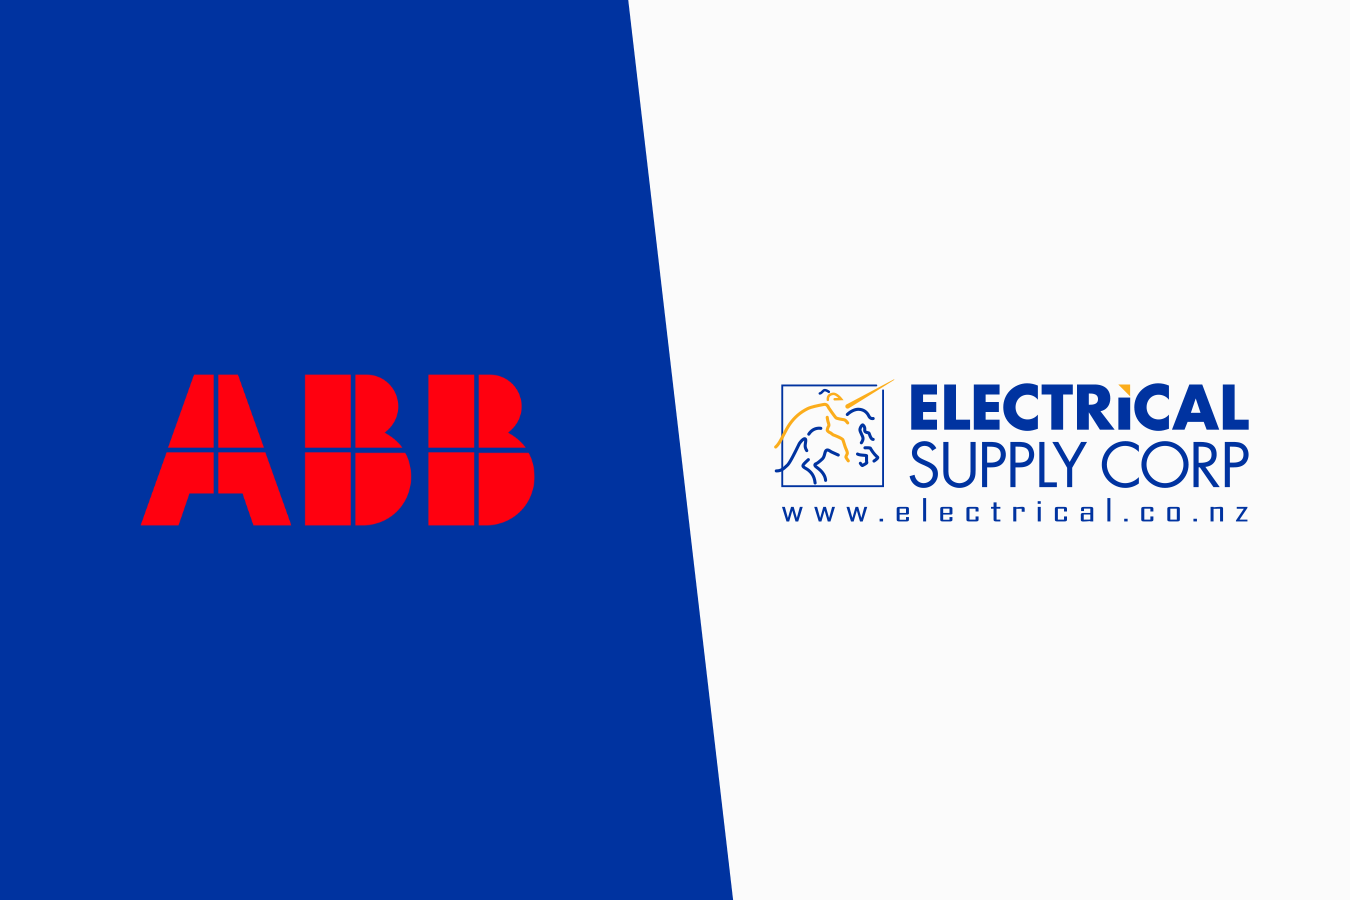 ABB & ESC Join Forces